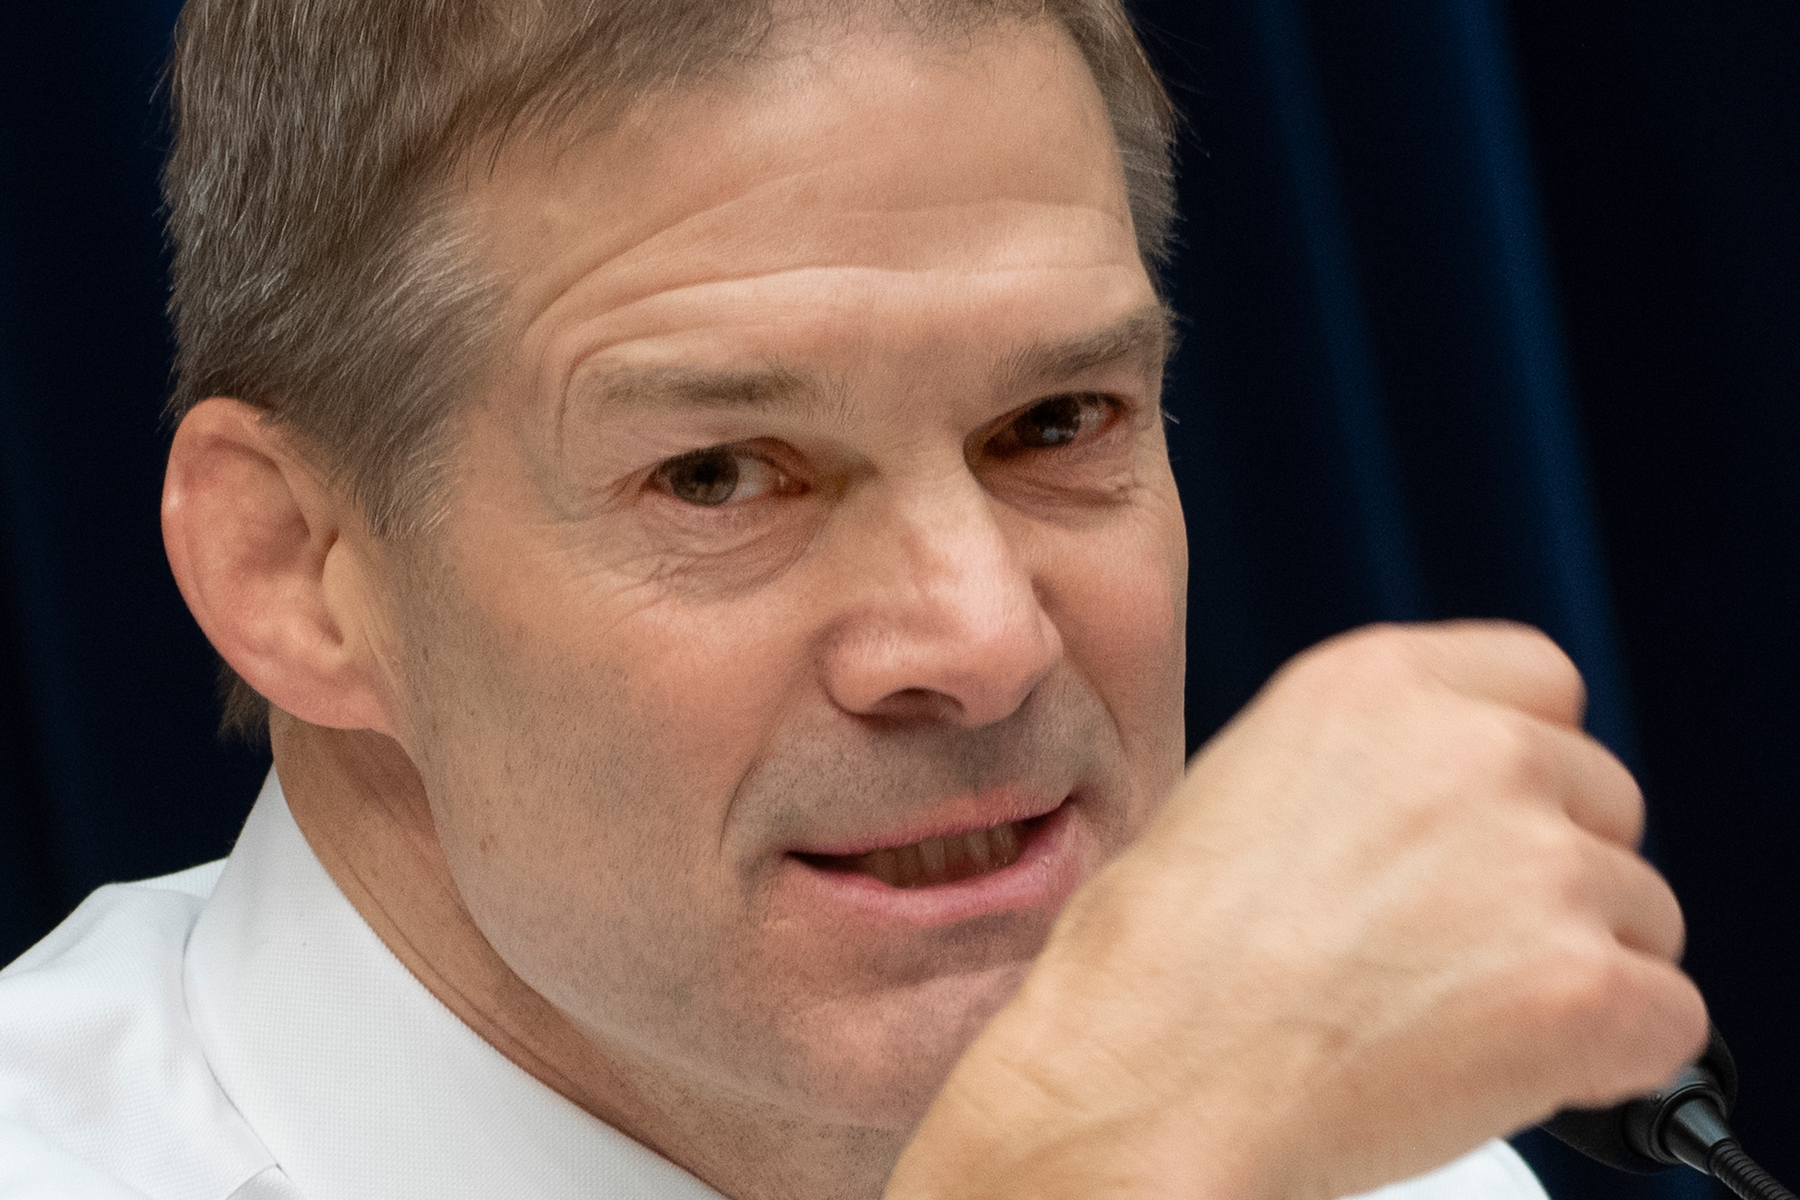 US Congressman and ranking member of the House Oversight and Reform Committee Jim Jordan, Republican of Ohio, questions Michael Cohen, US President Donald Trump's former personal attorney, as he testifies before the committee in the Rayburn House Office Building on Capitol Hill in Washington, DC on February 27, 2019